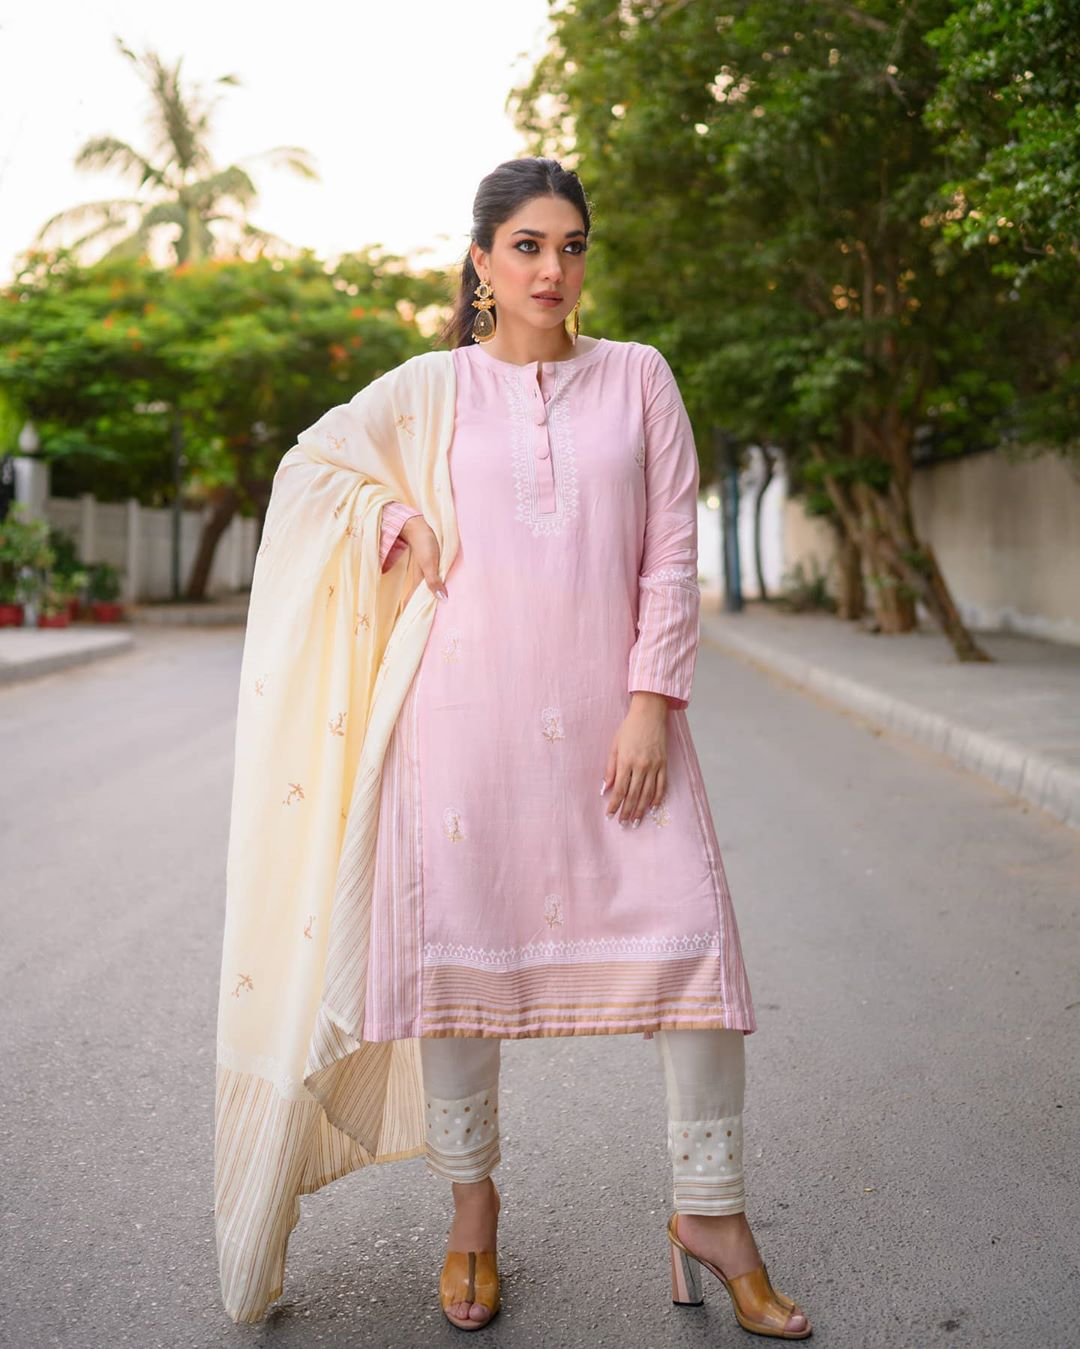 Sanam Jung latest Photo Shoot for Her Sister Brand Anum Jung